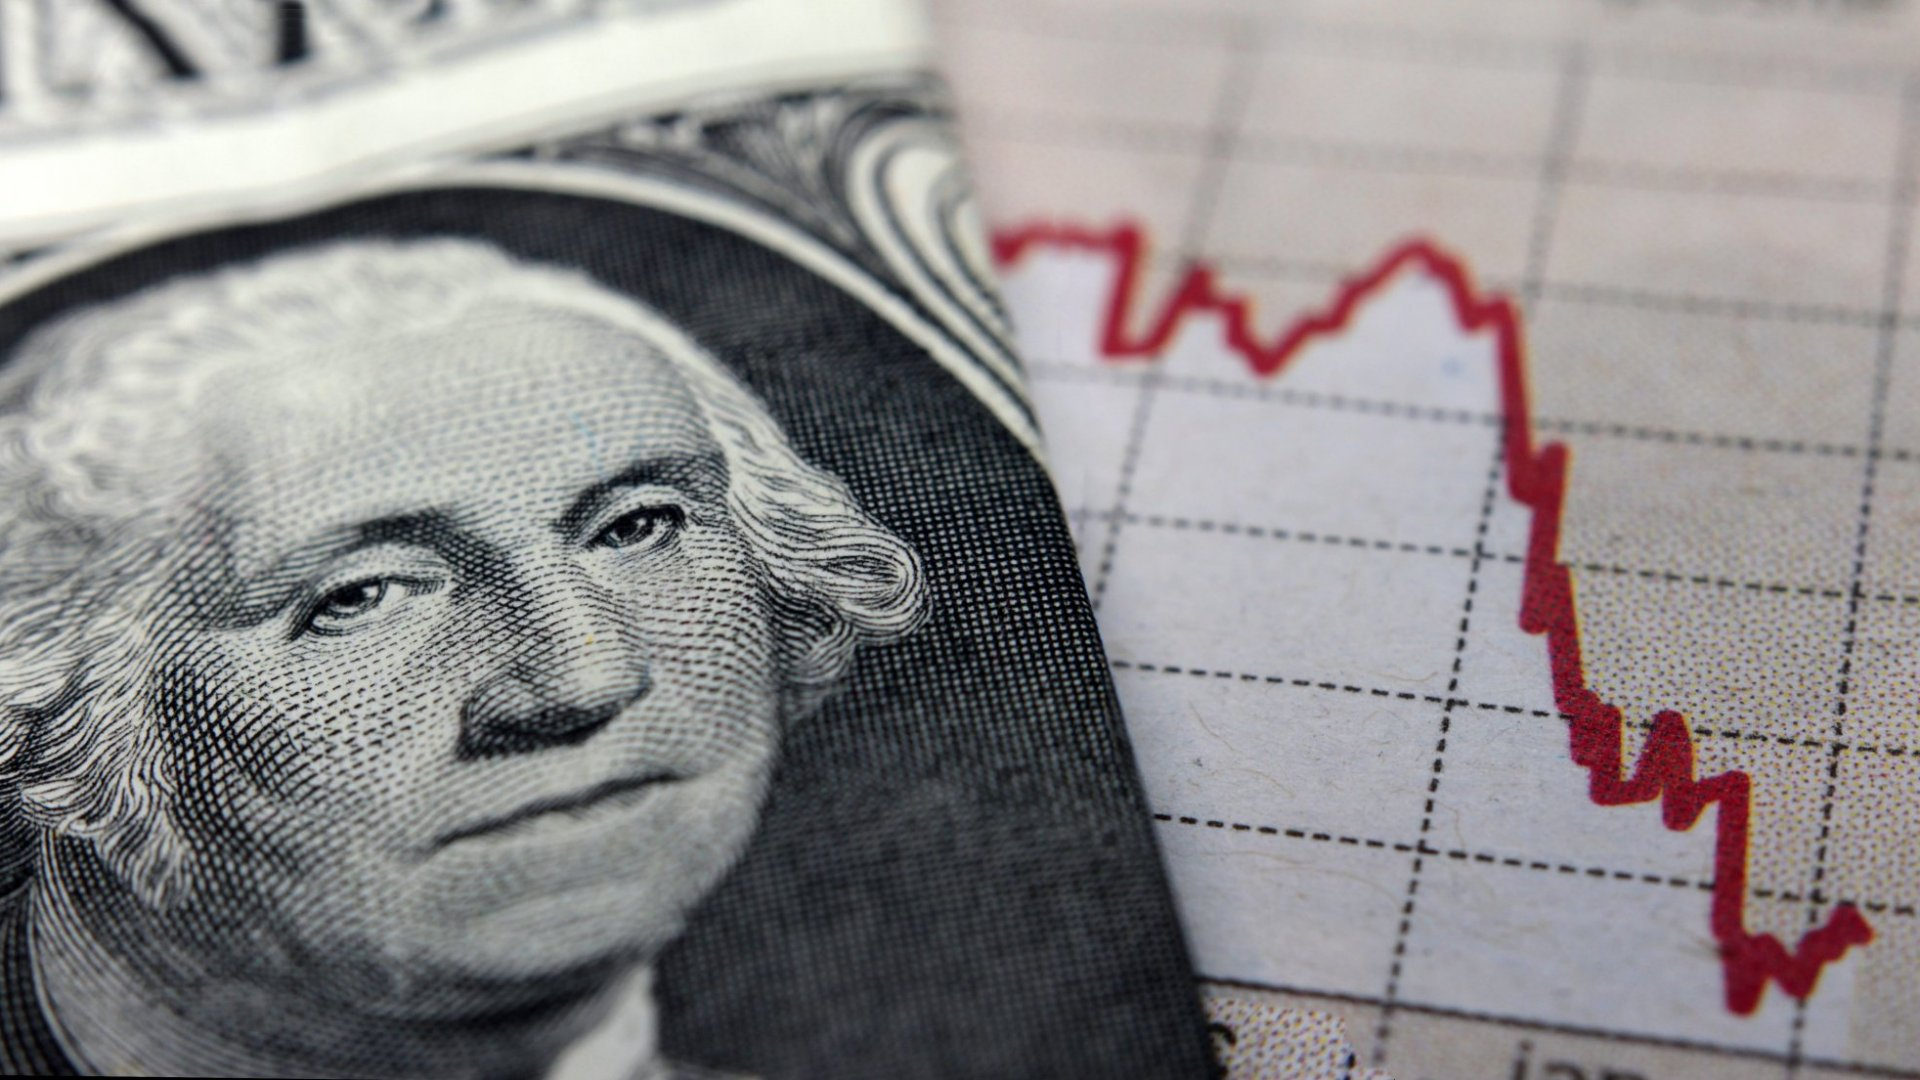 If a Recession is on the Horizon, You Need to be Ahead of the Curve Financially